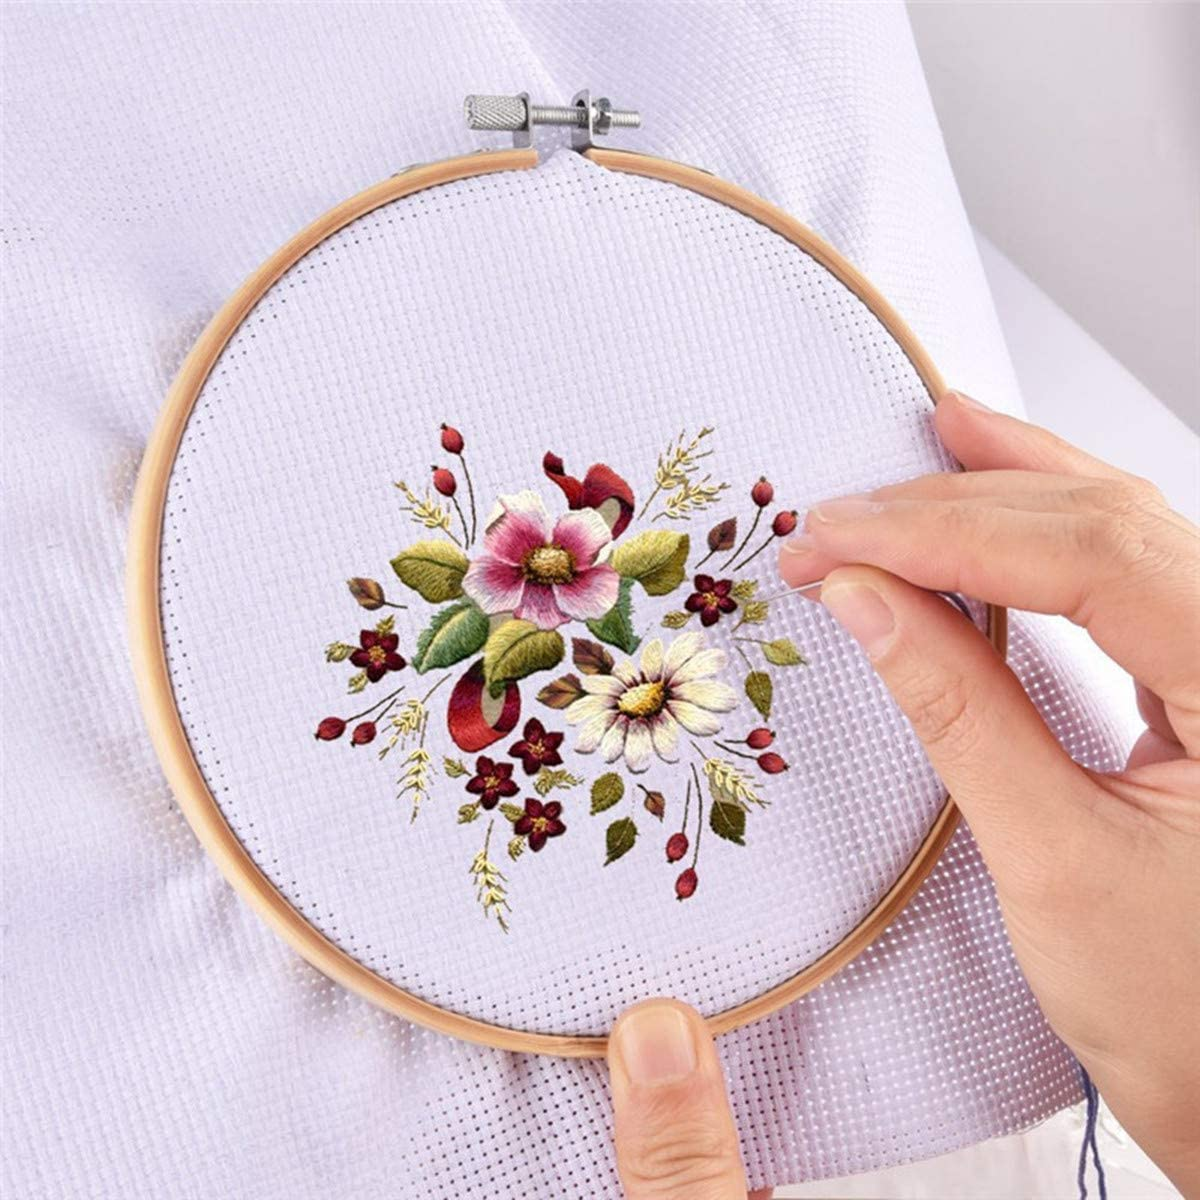 11 Count 5 Pieces Classic Reserve Aida Cloth Cross Stitch Cloth 12 by 12-Inch White